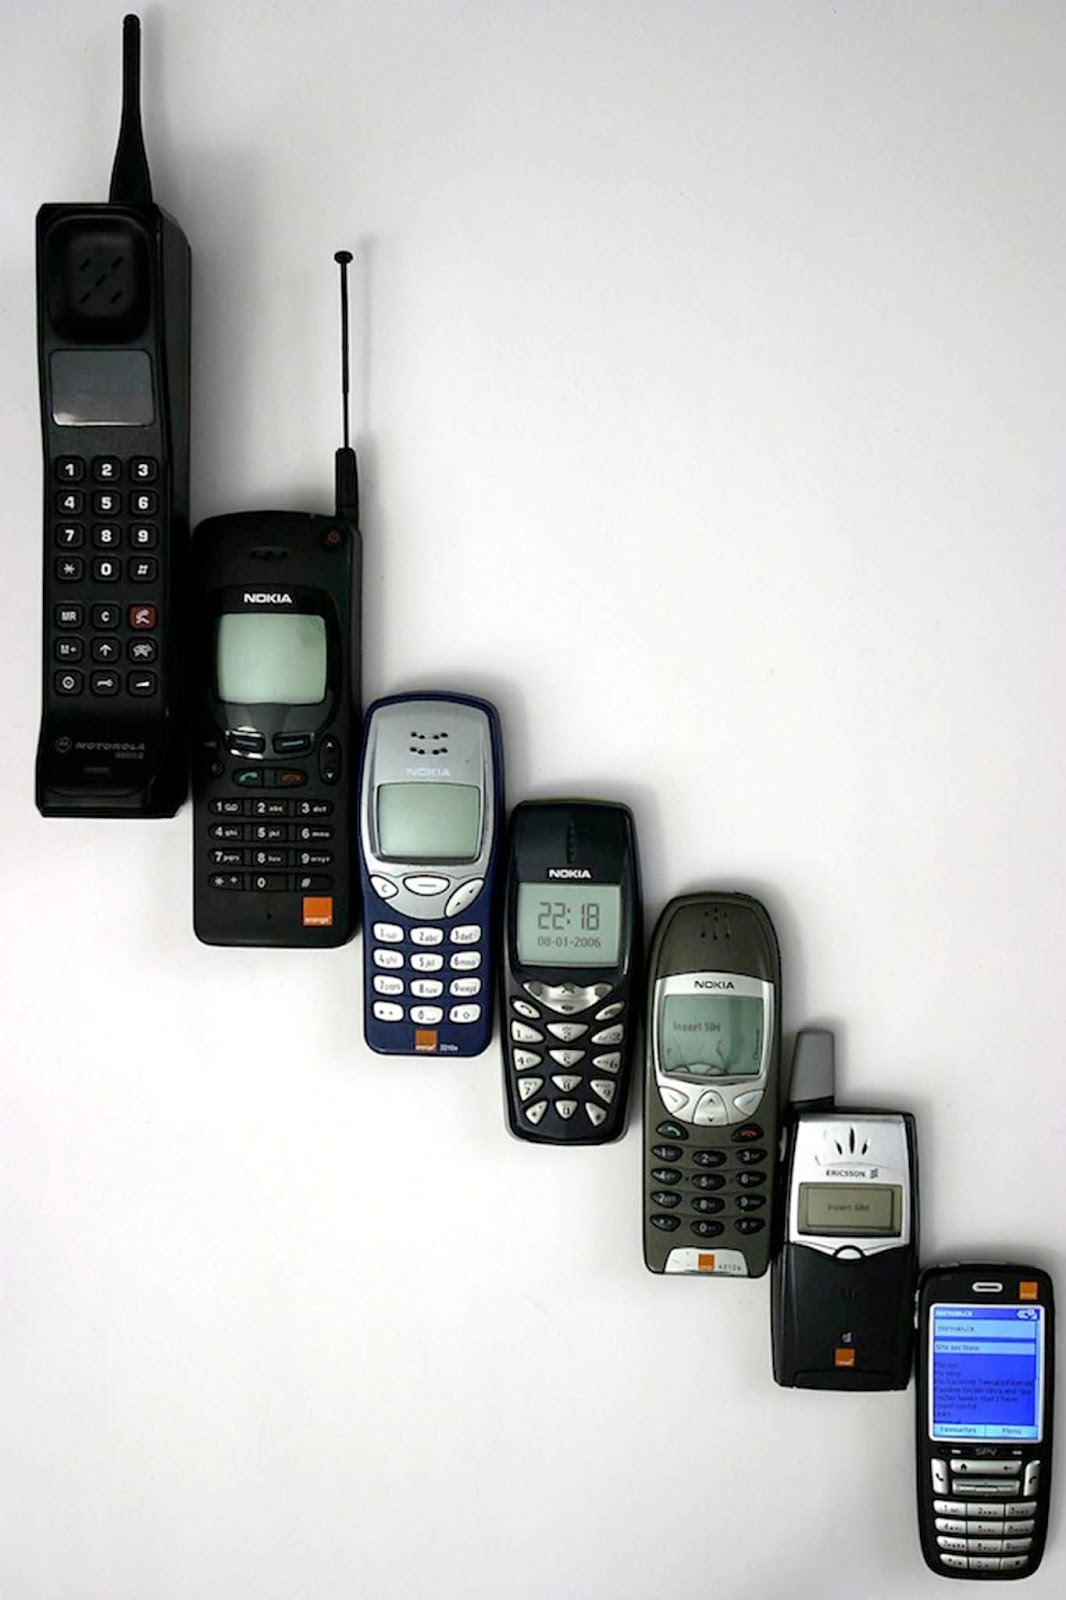 The evolution of the mobile phones. 1990-2000.